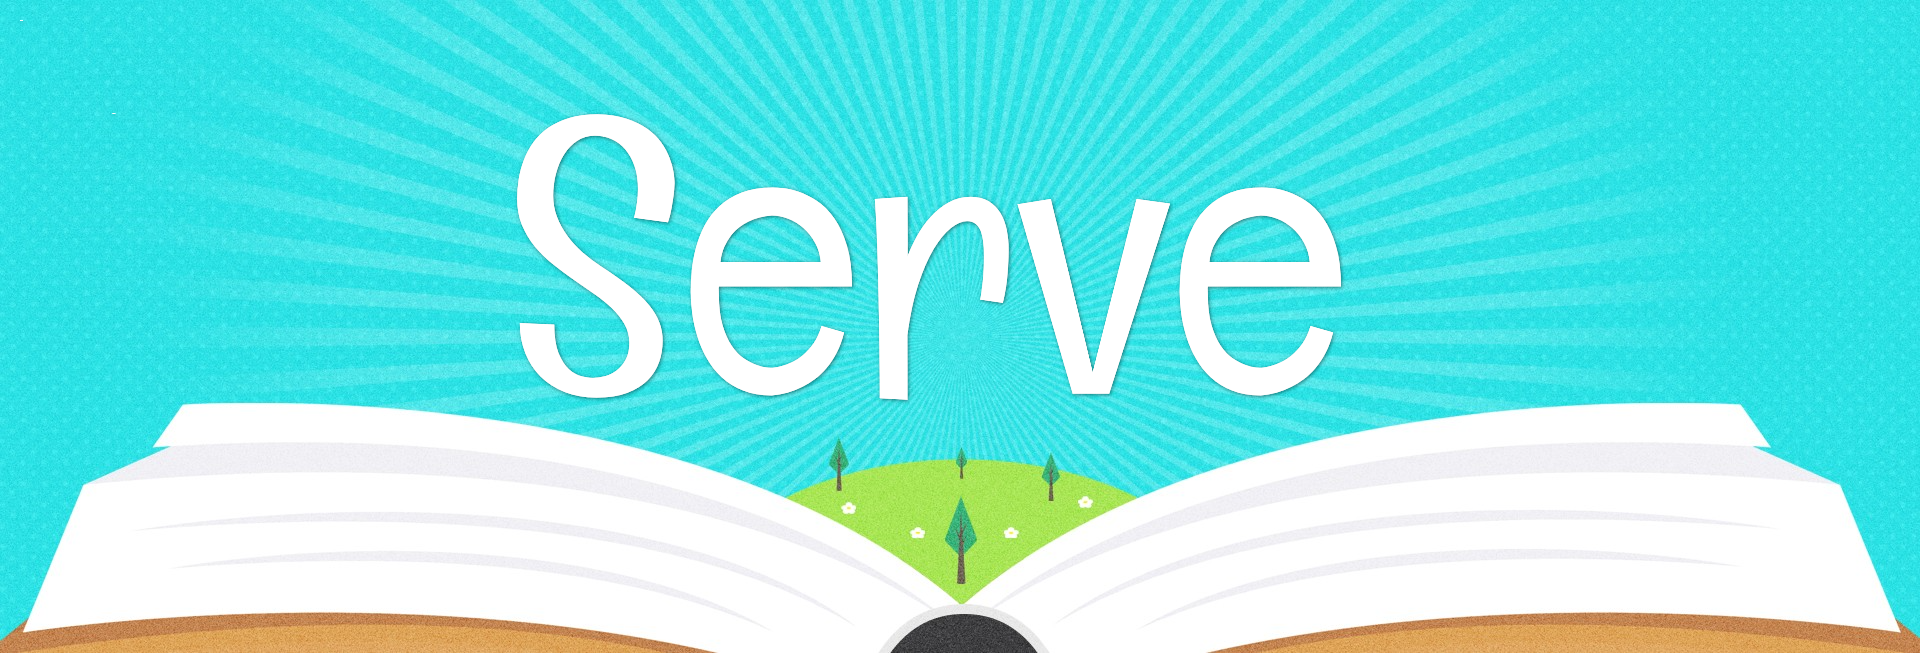 Kid's Church Service Website Banner